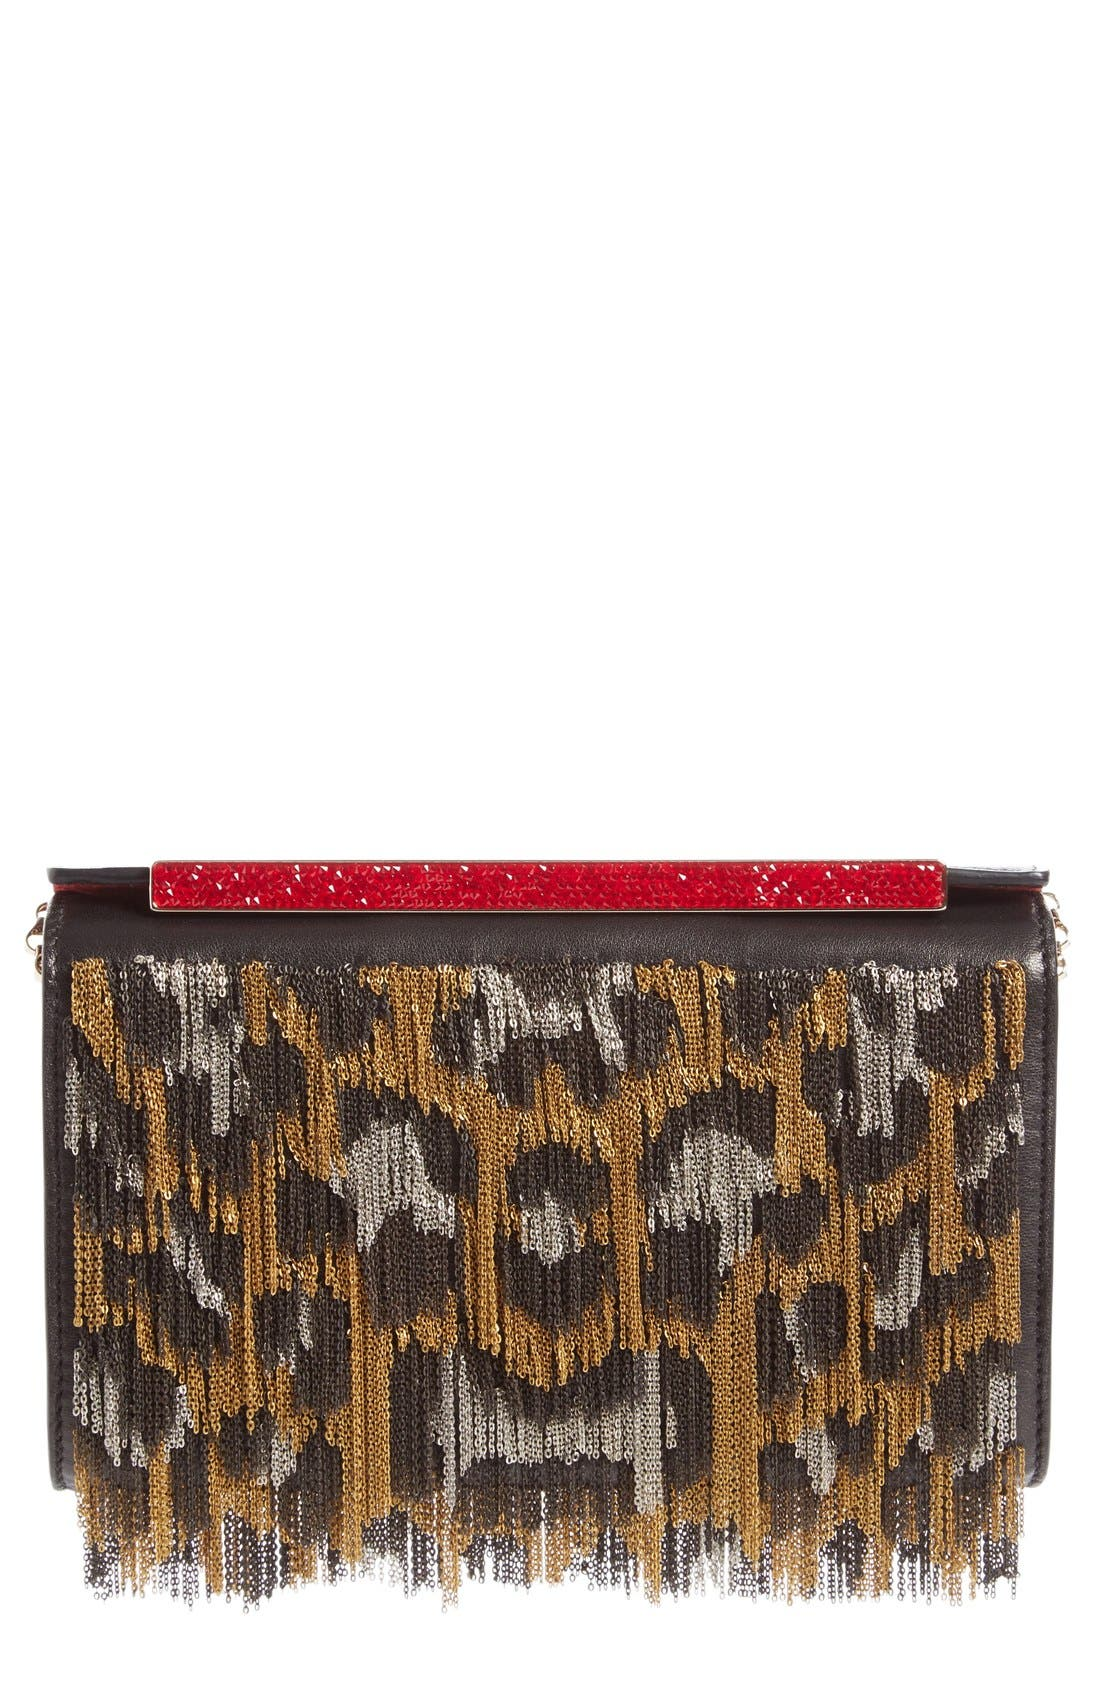 Alternate Image 1 Selected - Christian Louboutin Vanité Metallic Leopard Leather Clutch